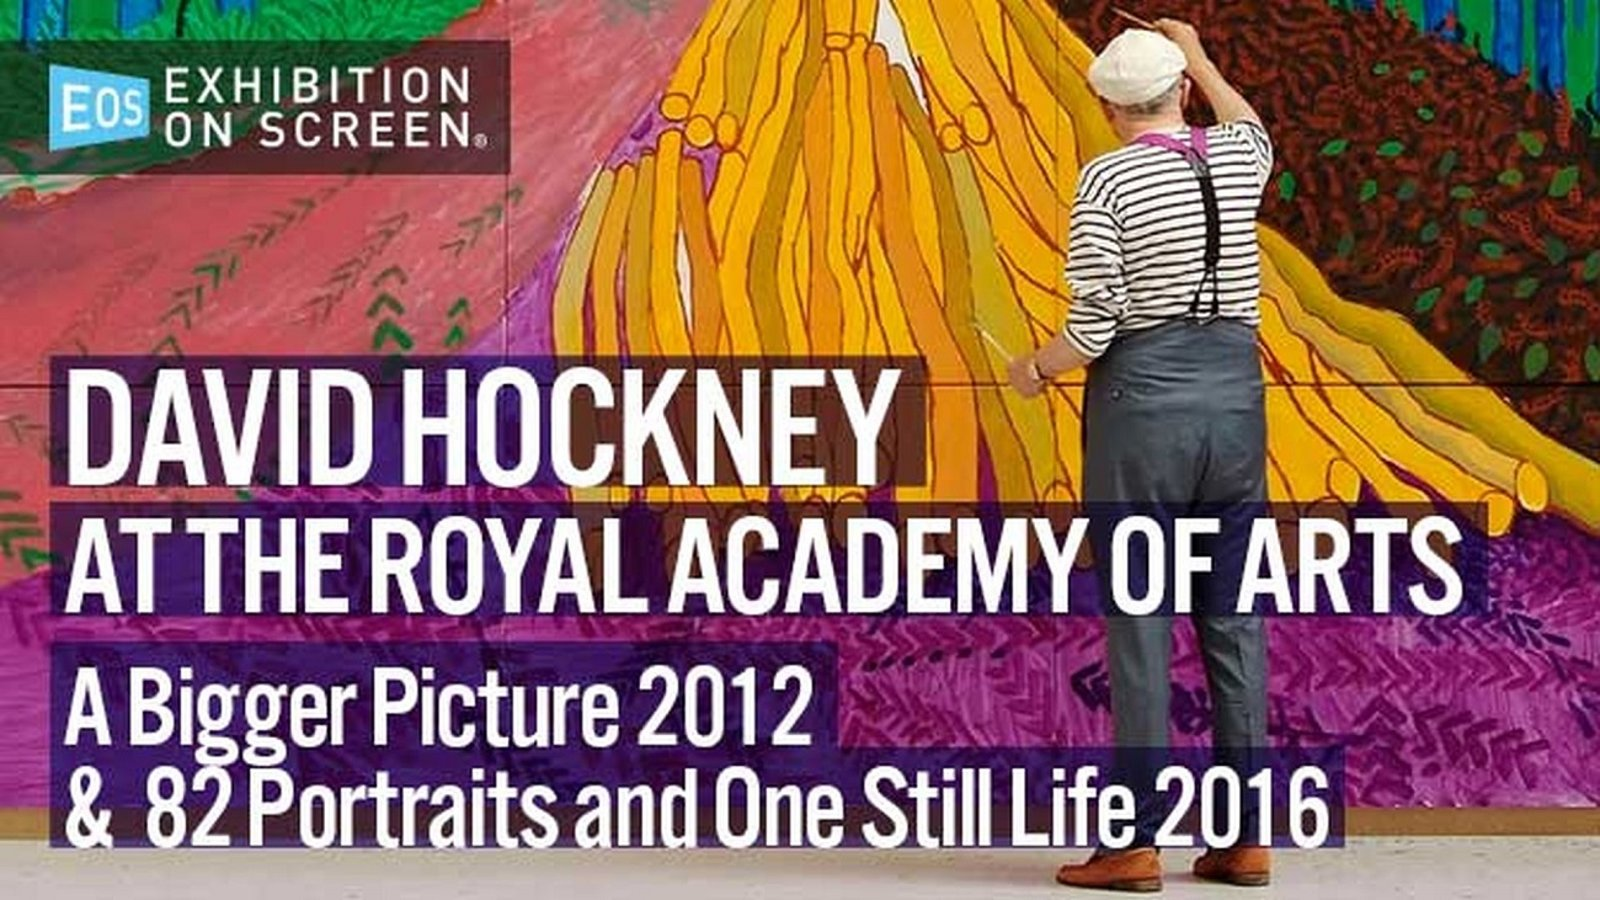 Exhibition On Screen: David Hockney - At The Royal Academy Of Art